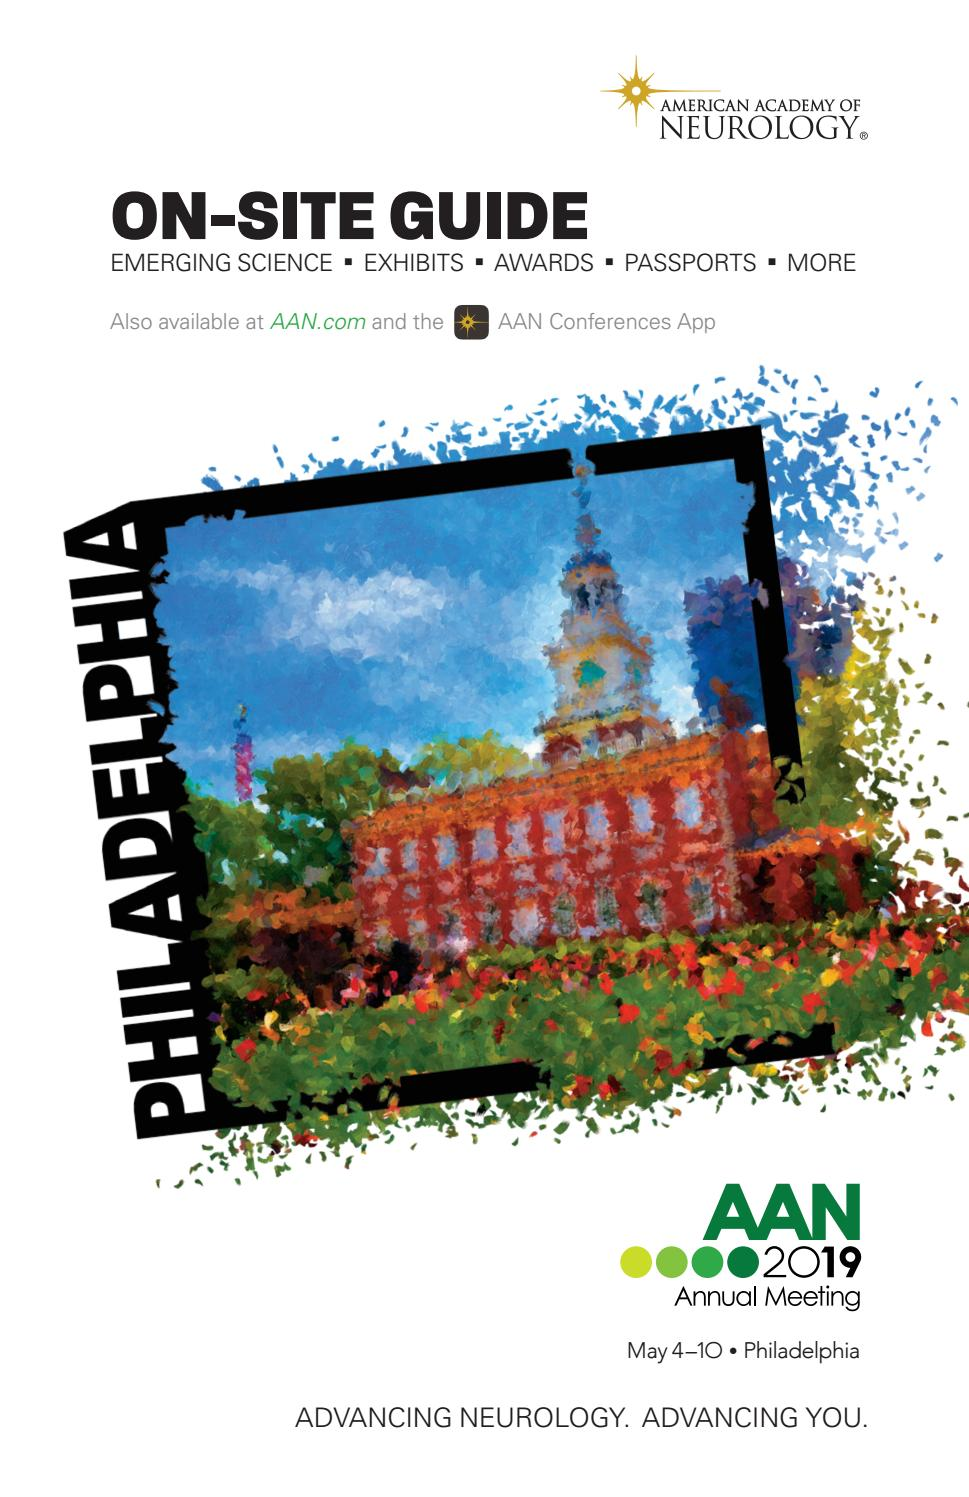 2019 AAN Annual Meeting On-site Guide by American Academy of